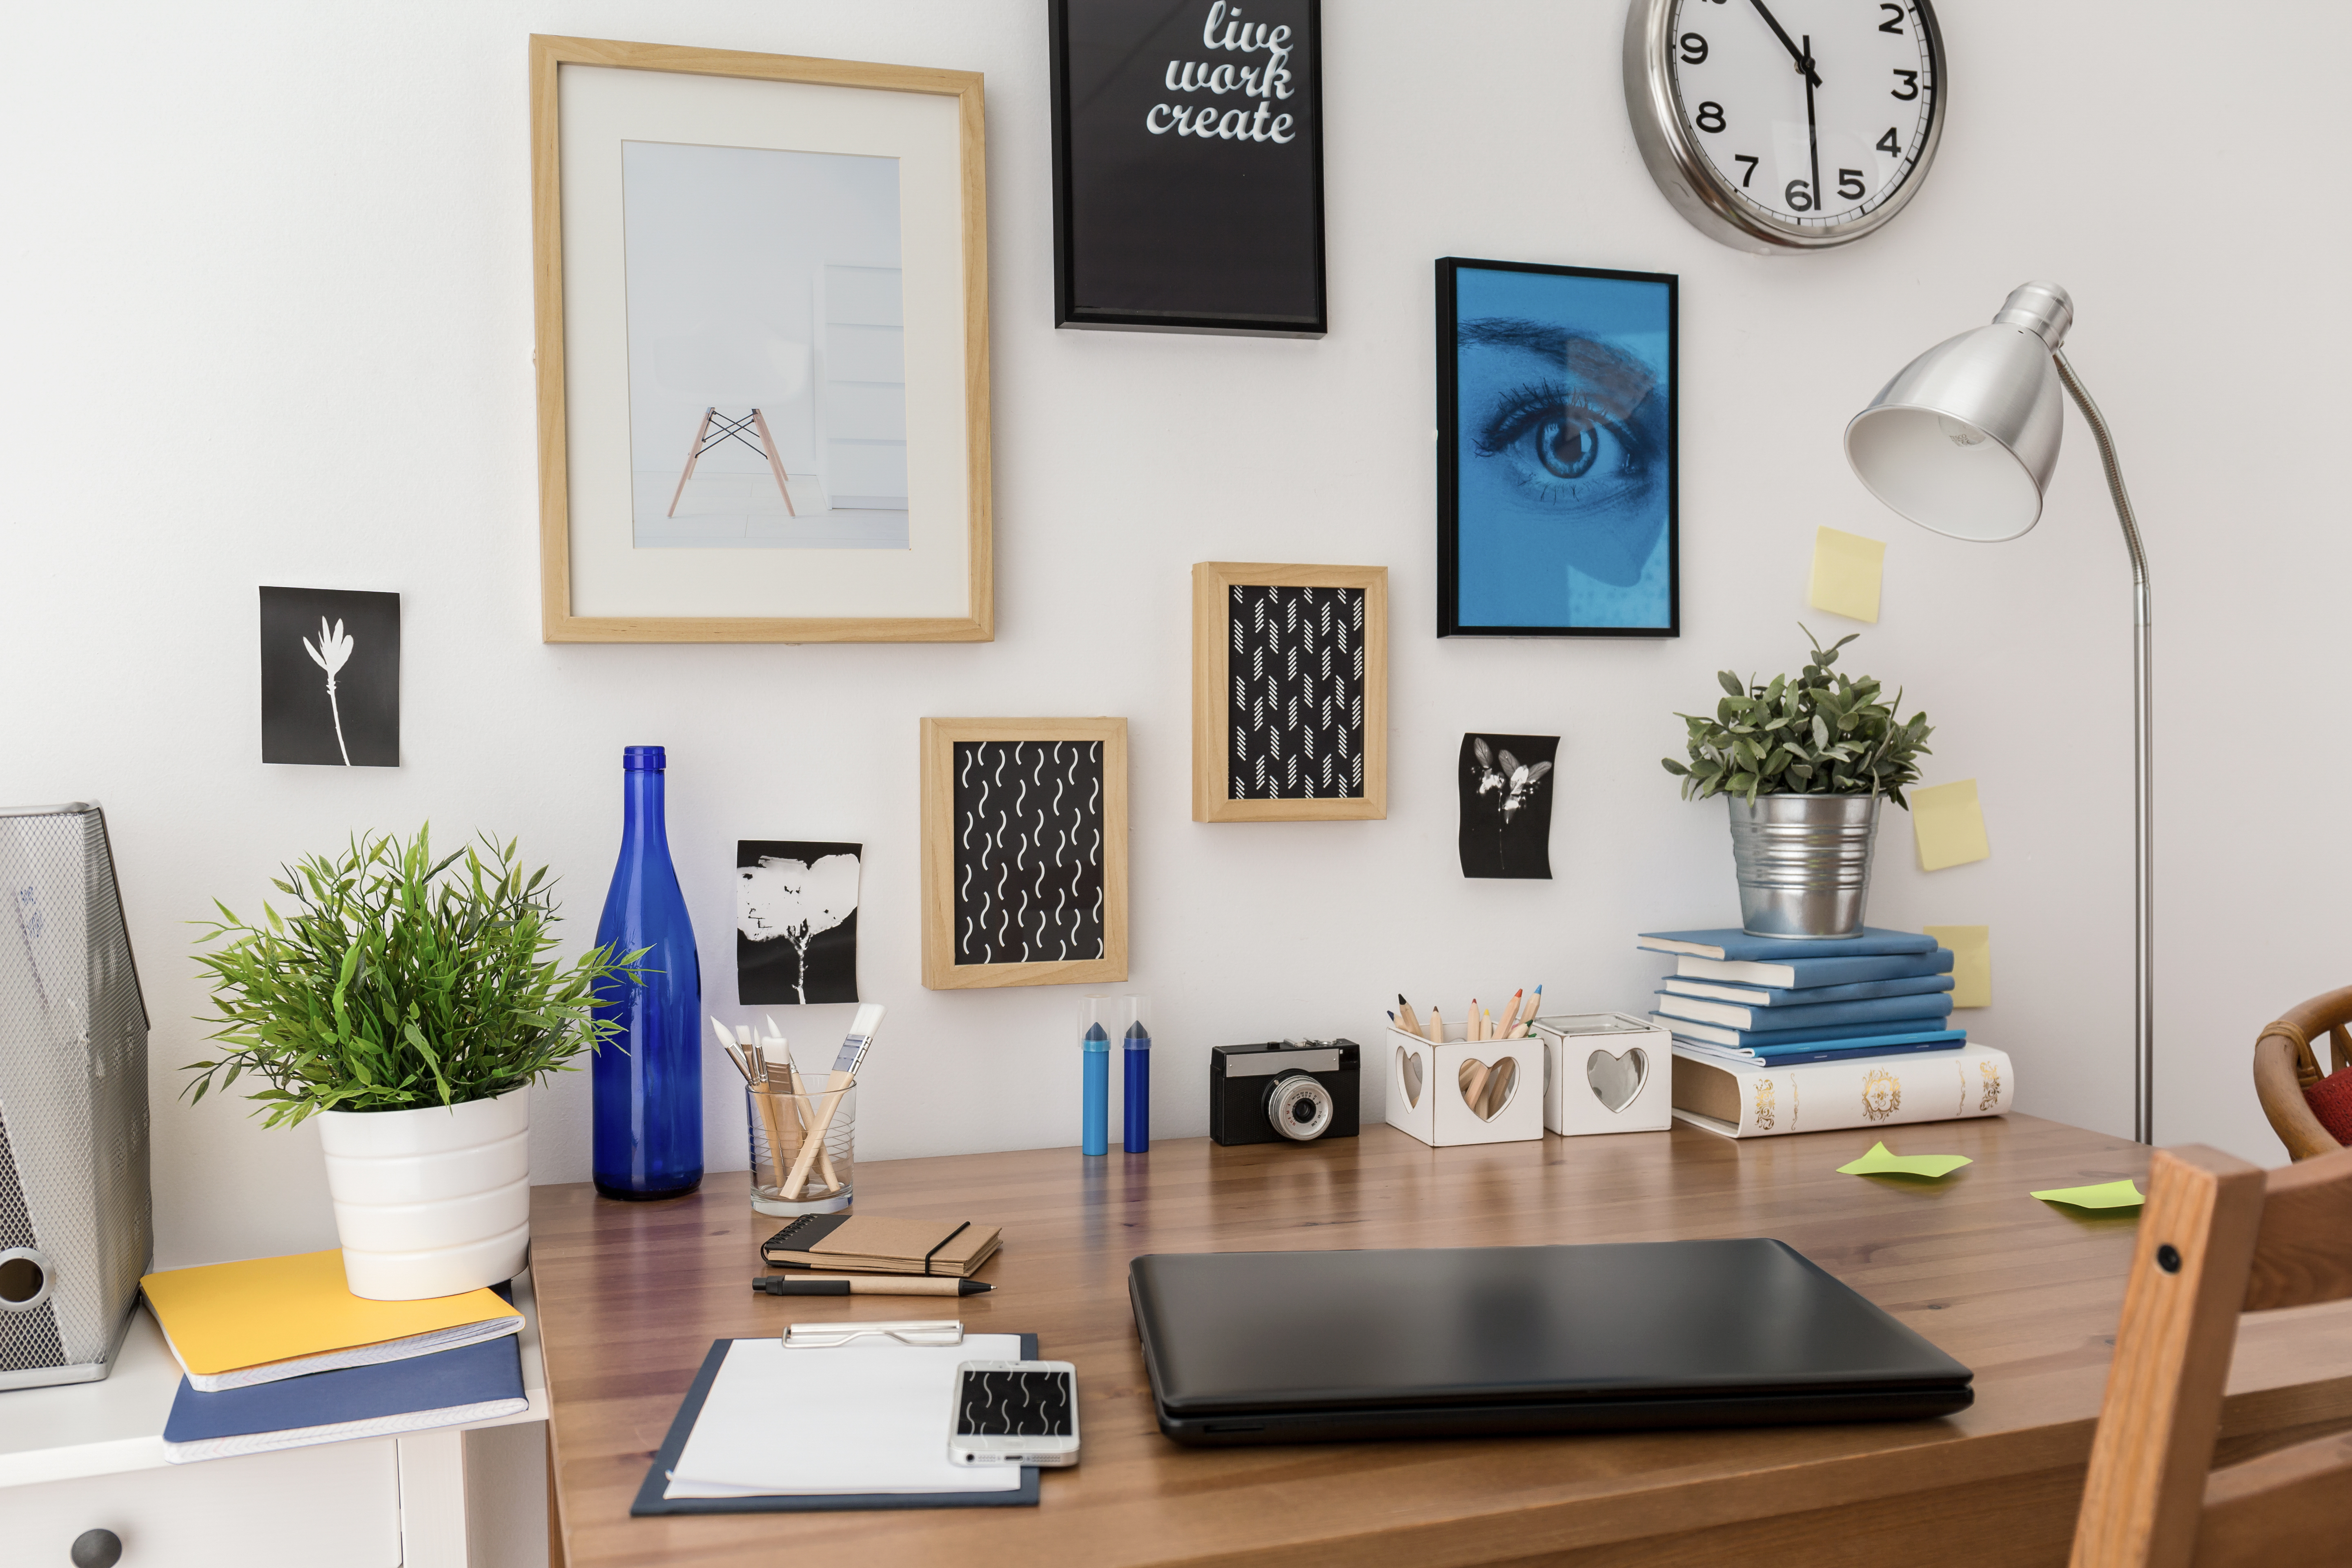 A well-organized desk against a wall, with a closed laptop, a potted plant, and a lamp, and there's a clock on the wall.